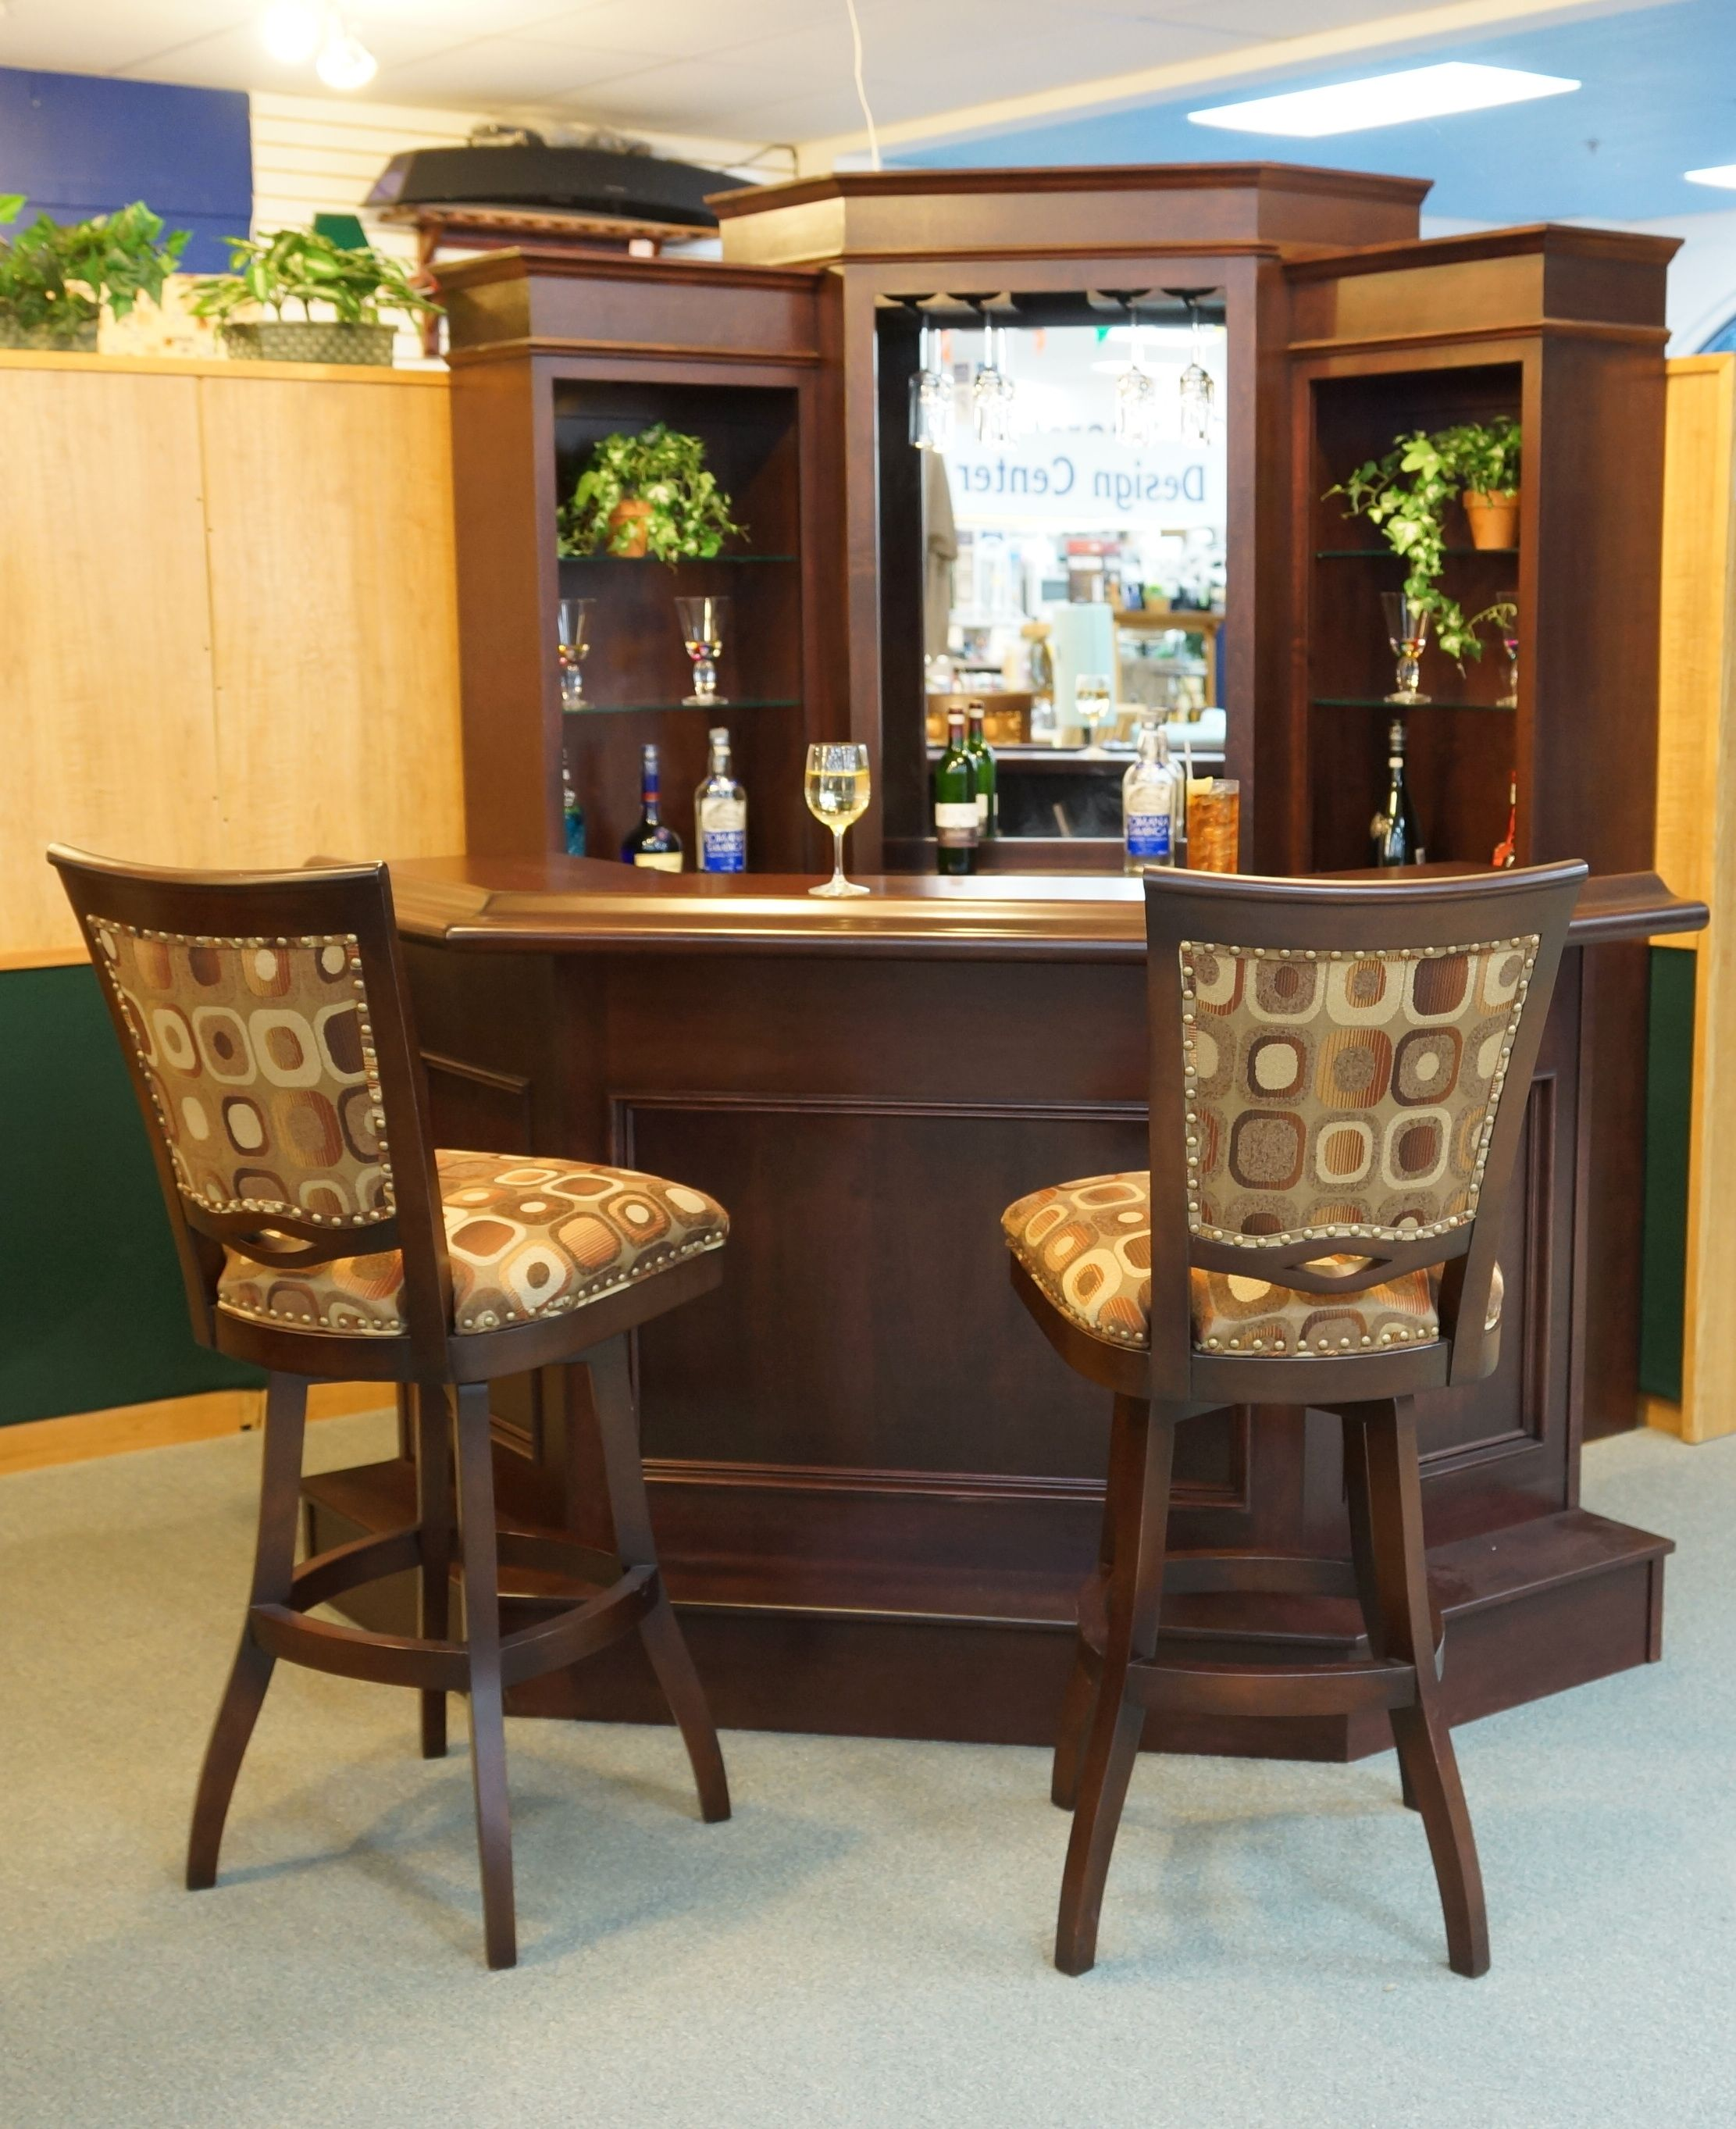 Corner bar by primocraft with barstools by tobias designs Breakfast nook bar ideas